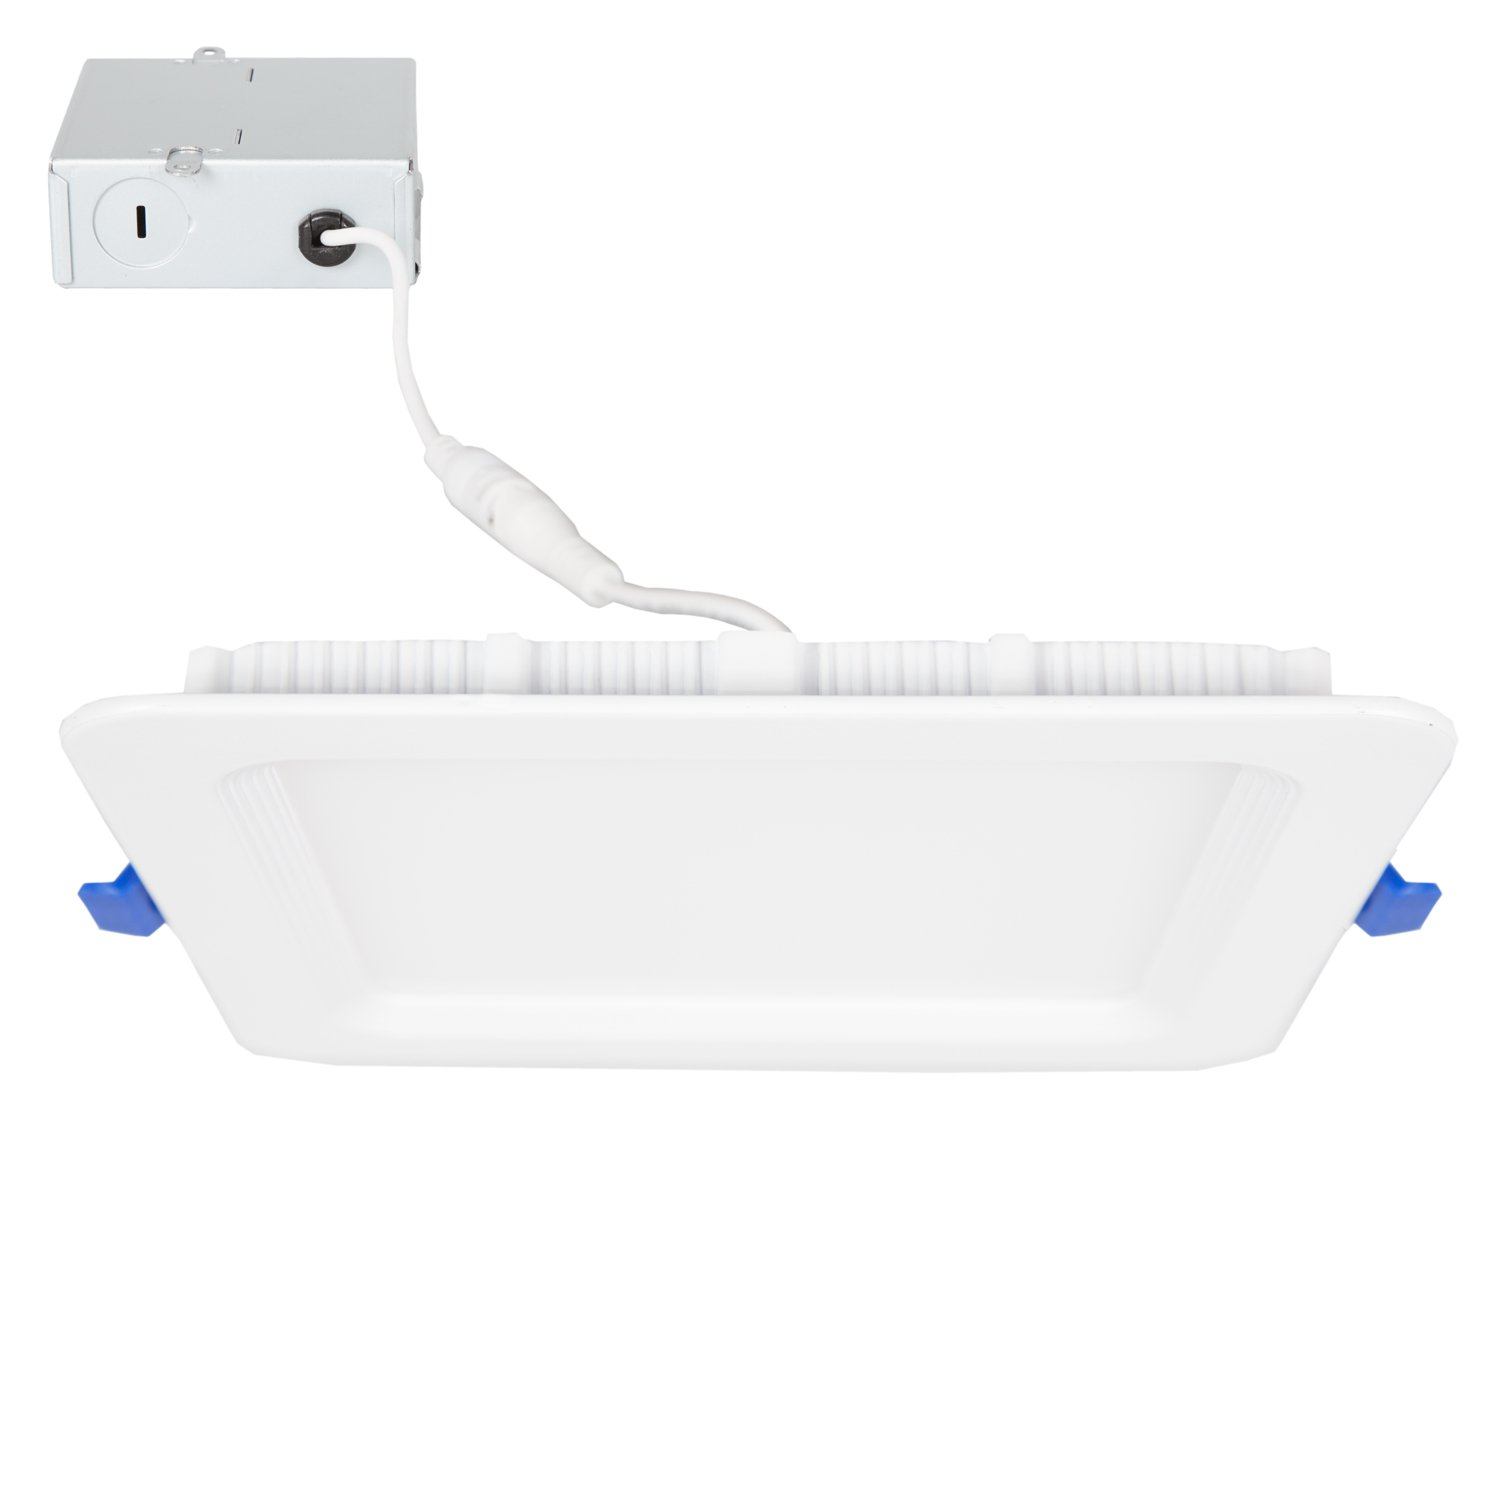 Dimmable Slim Round LED Downlight 850 Lumens Recessed Retrofit Daylight White 5000K 12 Watt Junction Box Included. Flat Panel Light Fixture Maxxima 6 in